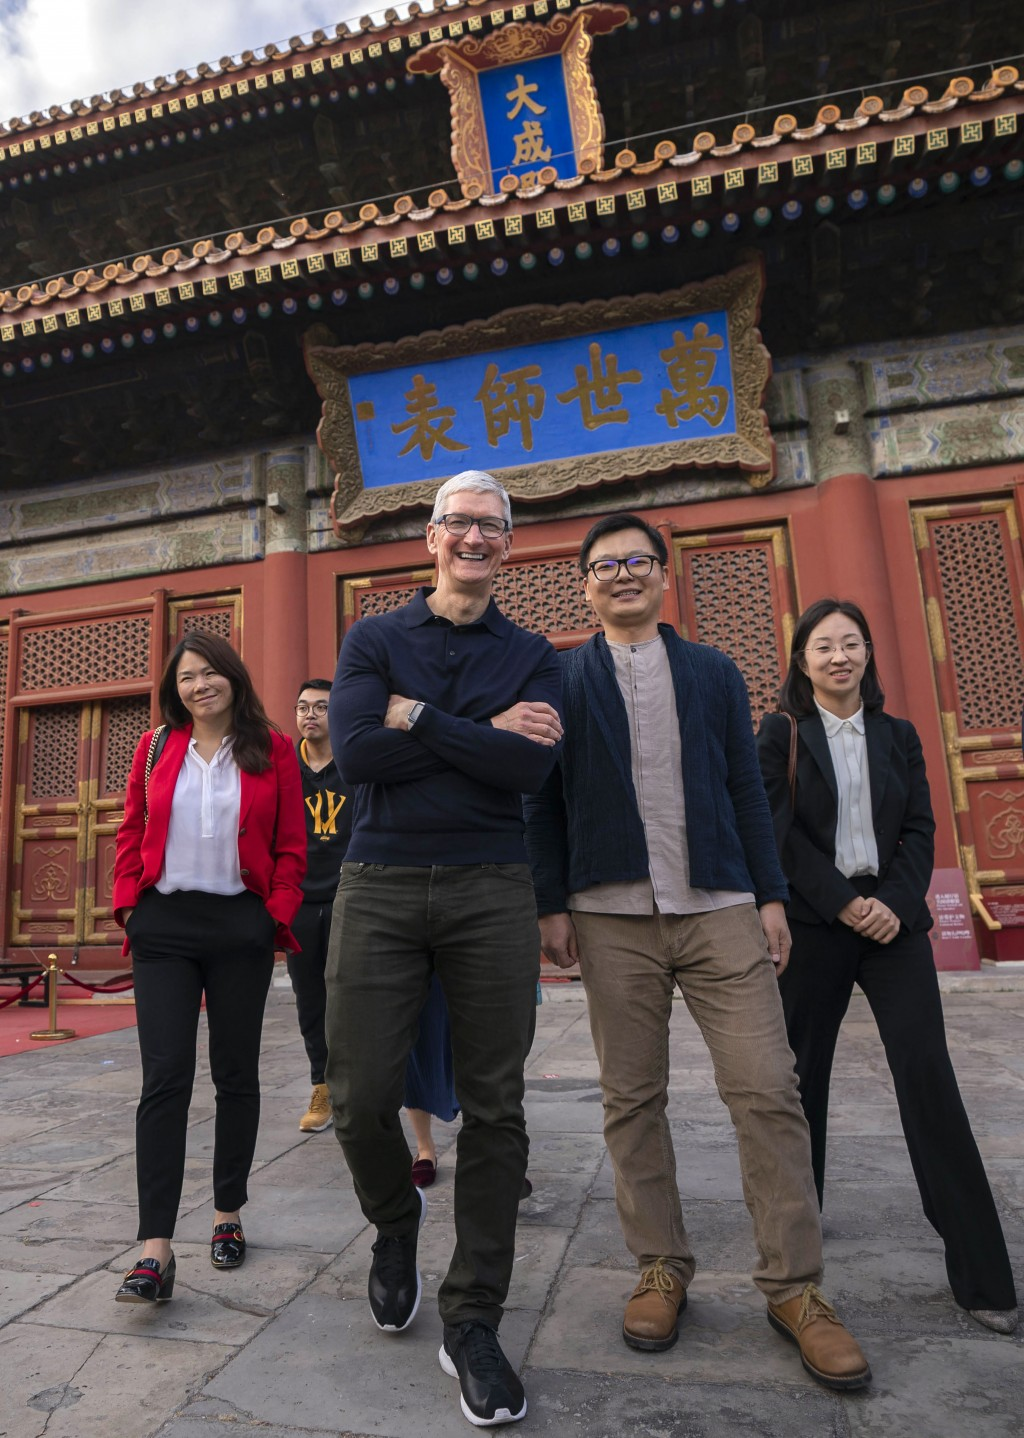 FILE - In this Oct. 10, 2018 photo released by China's Xinhua News Agency, Apple CEO Tim Cook, third from left, and Qu Zhangcai, second from right, a